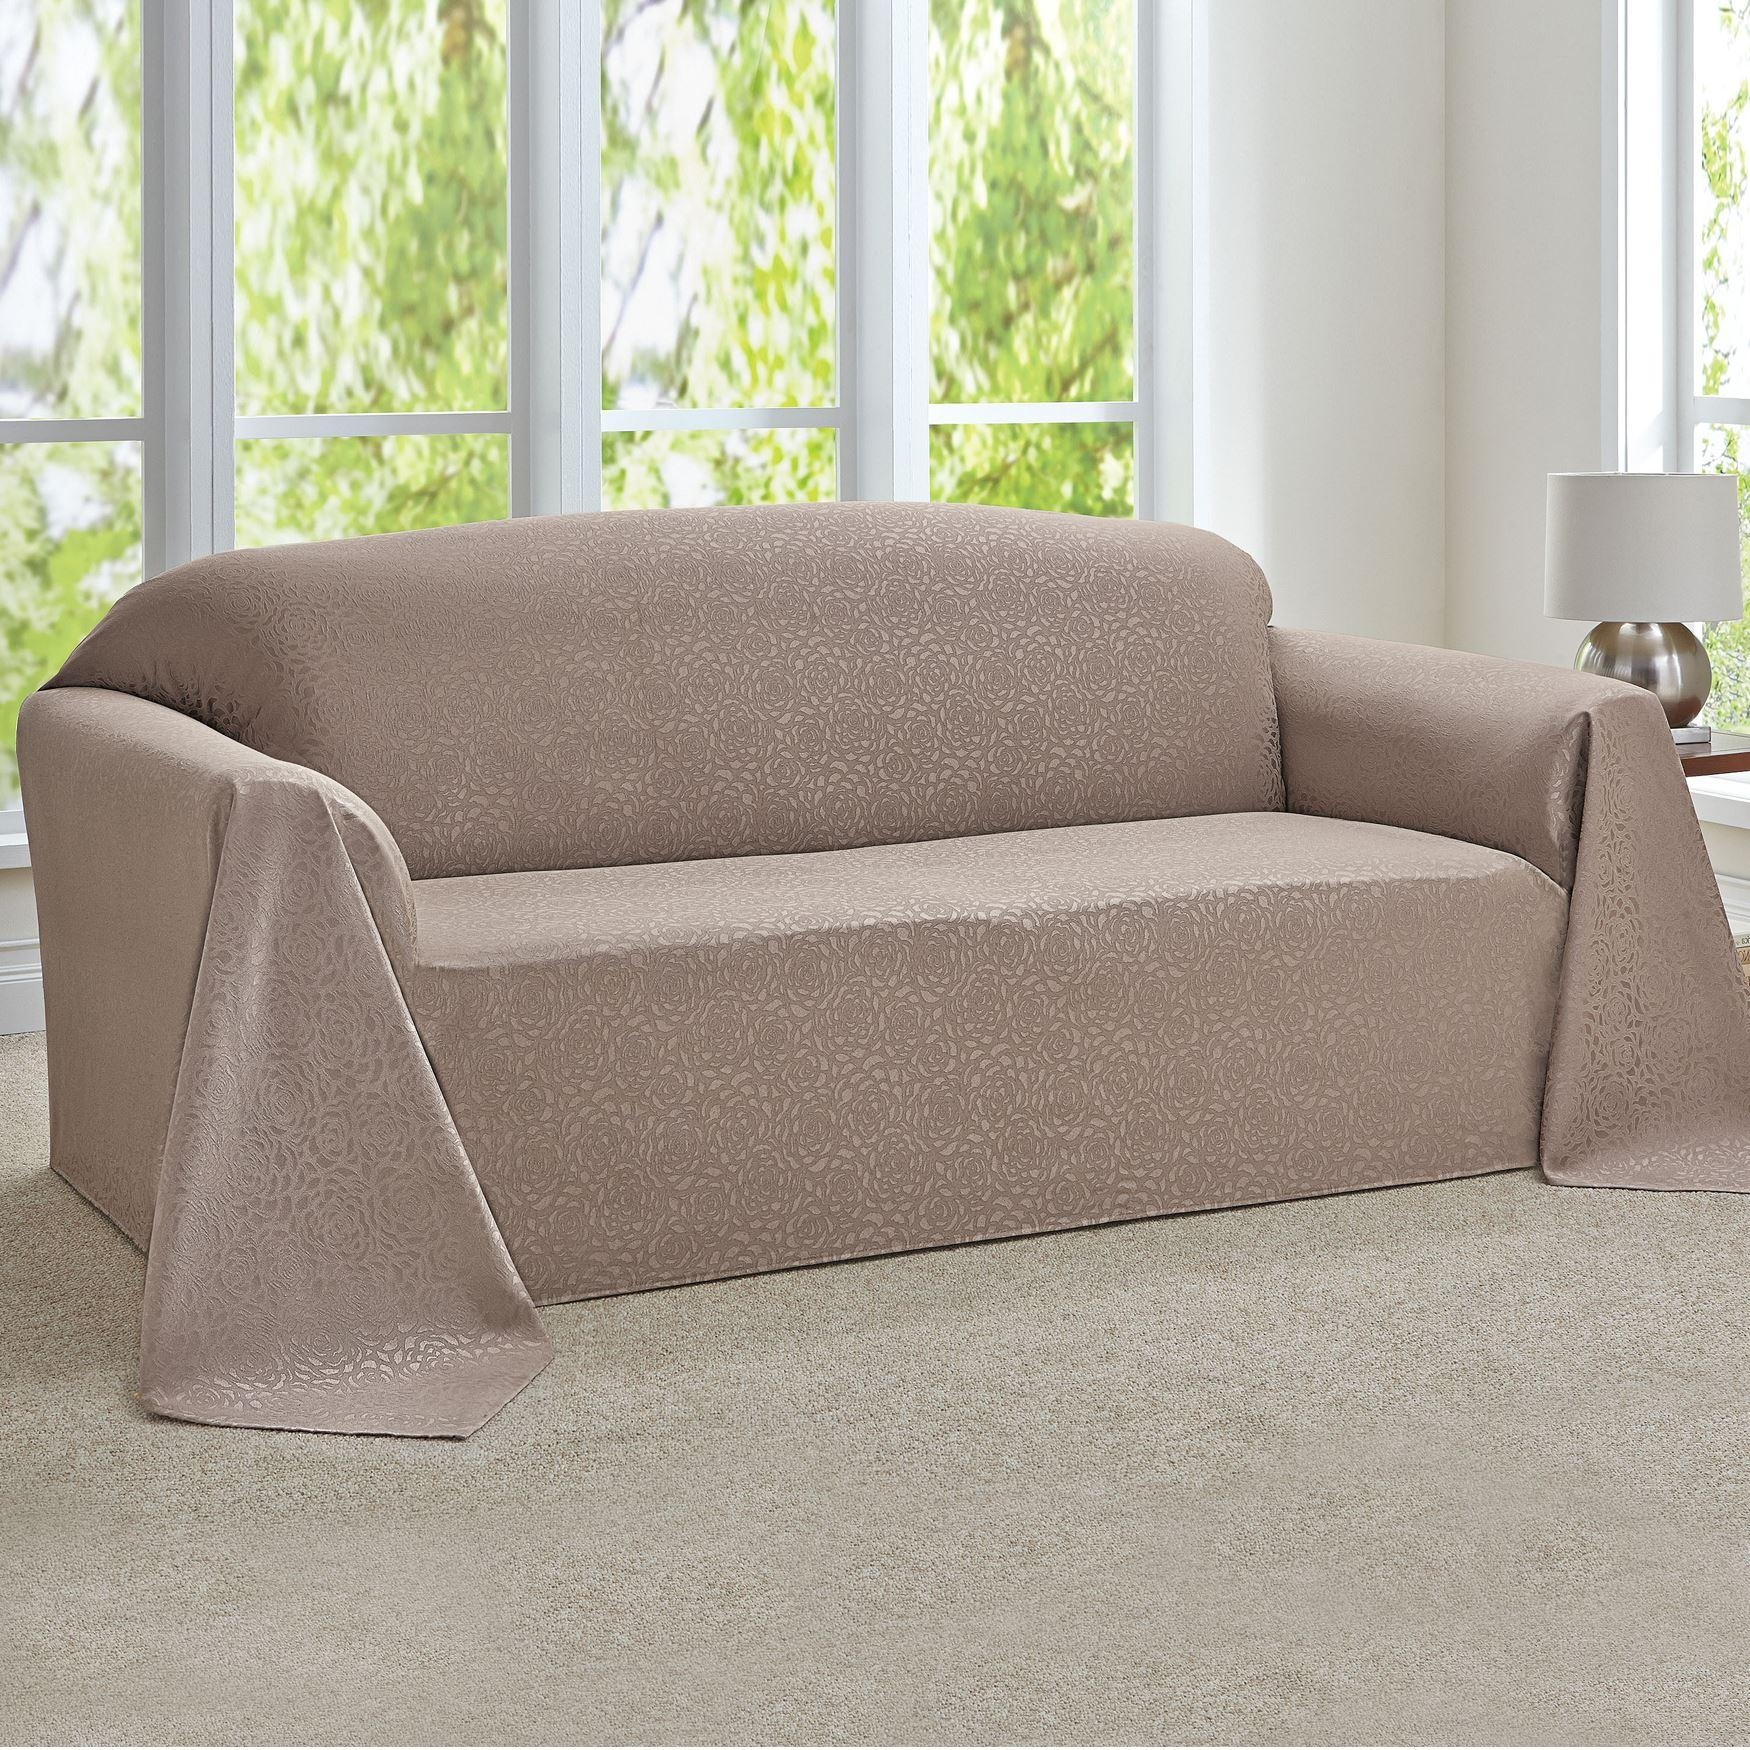 Sofas : Awesome Leather Couch Covers Sofa Throw Covers Modern Sofa Inside Large Sofa Slipcovers (View 10 of 23)